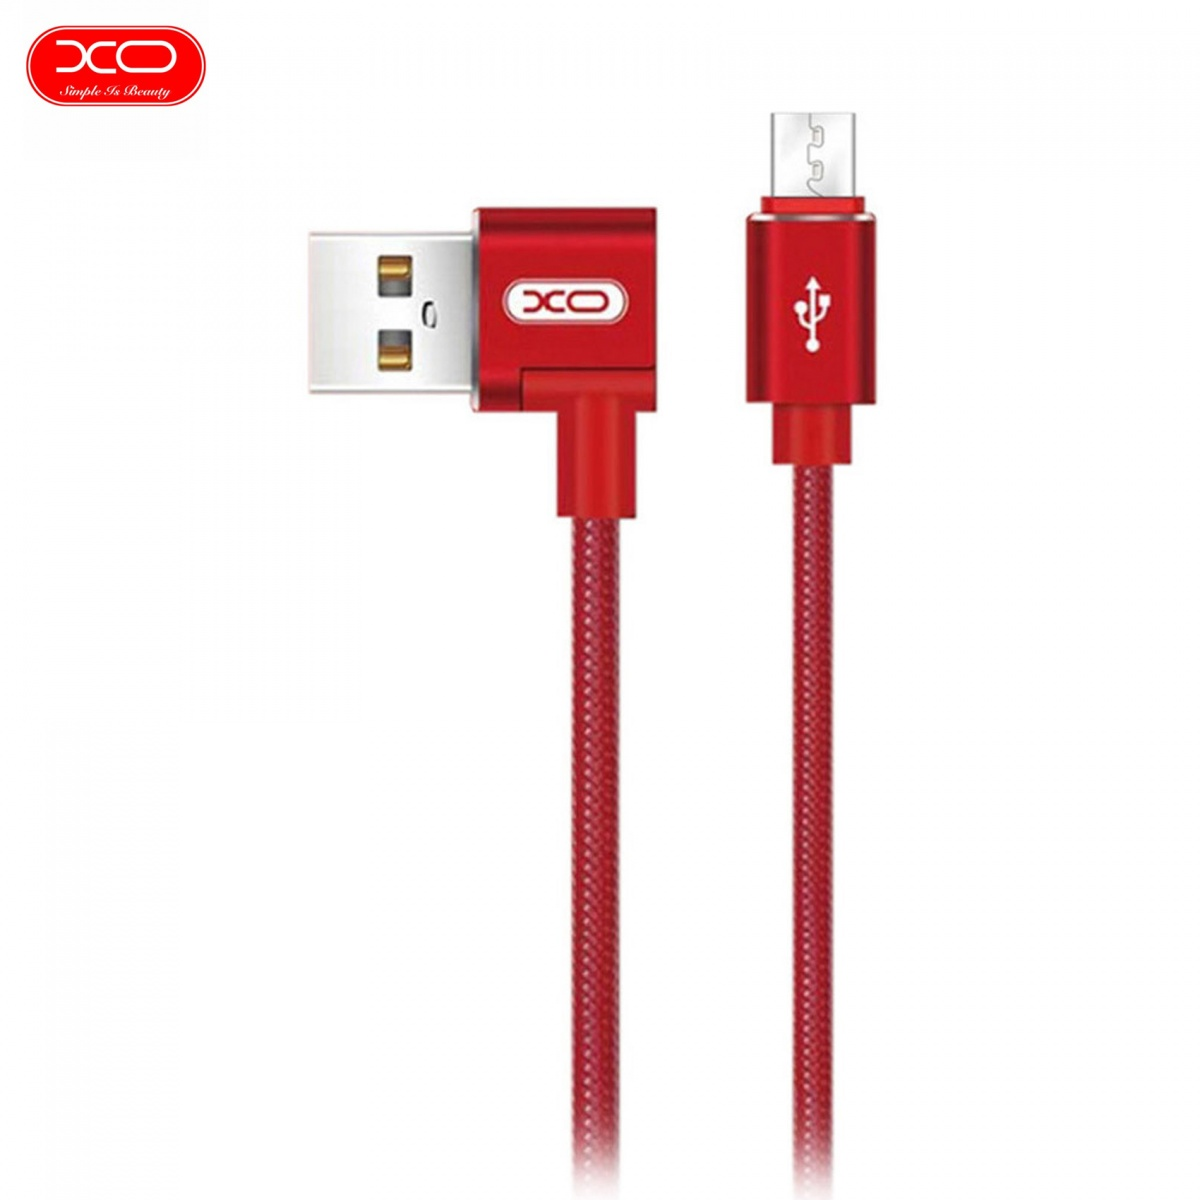 XO NB31 Micro USB Elbow Alloy 2.4A Cable - Red